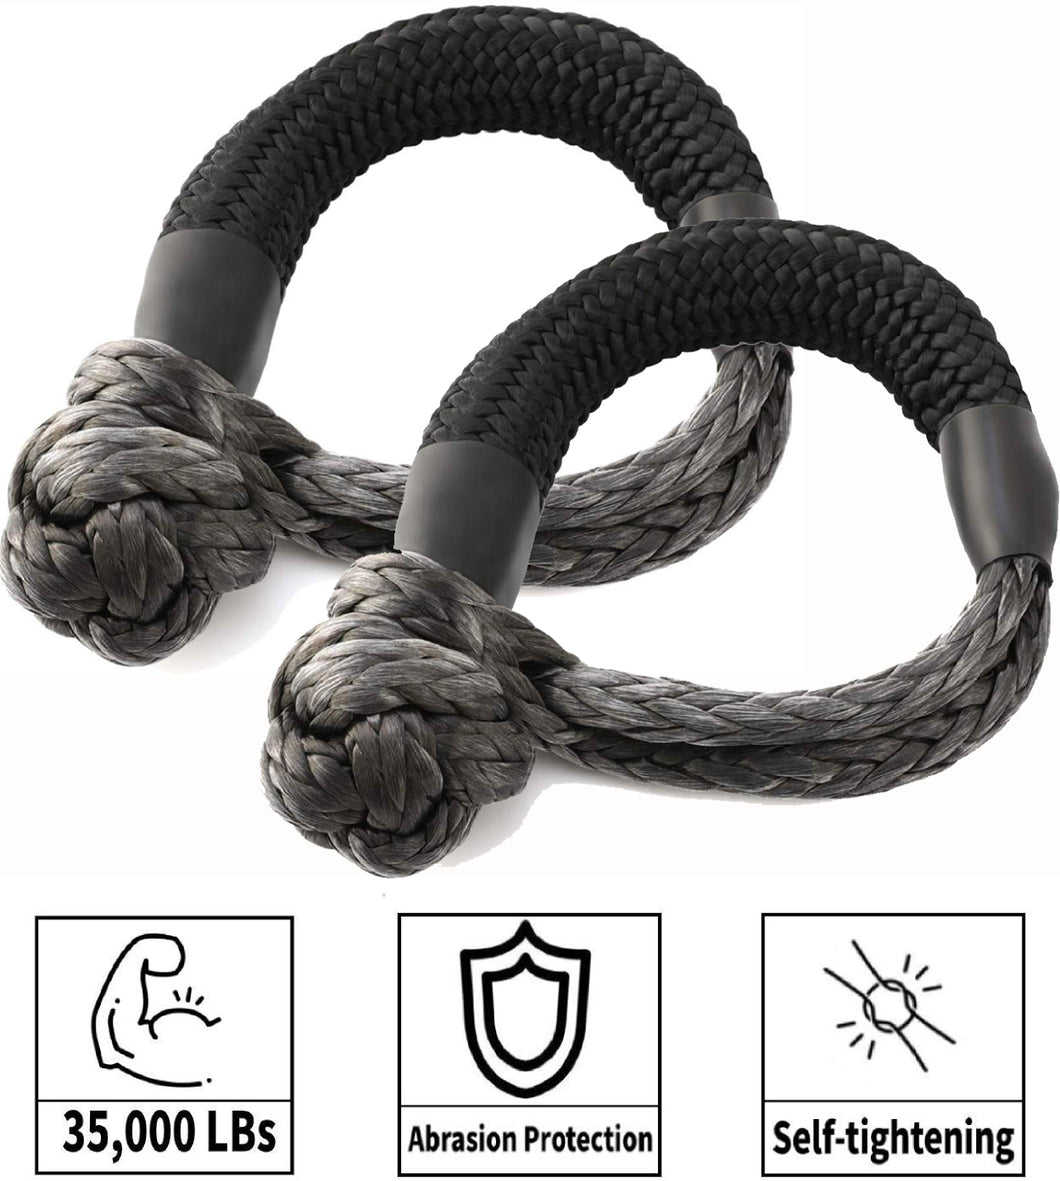 Kohree Synthetic Soft Shackle,7/16 Inch X 20 Inch (35,000lbs Breaking Strength) UHMWPE Soft Shackle Recovery Rope for Sailing SUV ATV 4X4 Truck Jeep Recovery Climbing Towing (2 Pack) - kohree